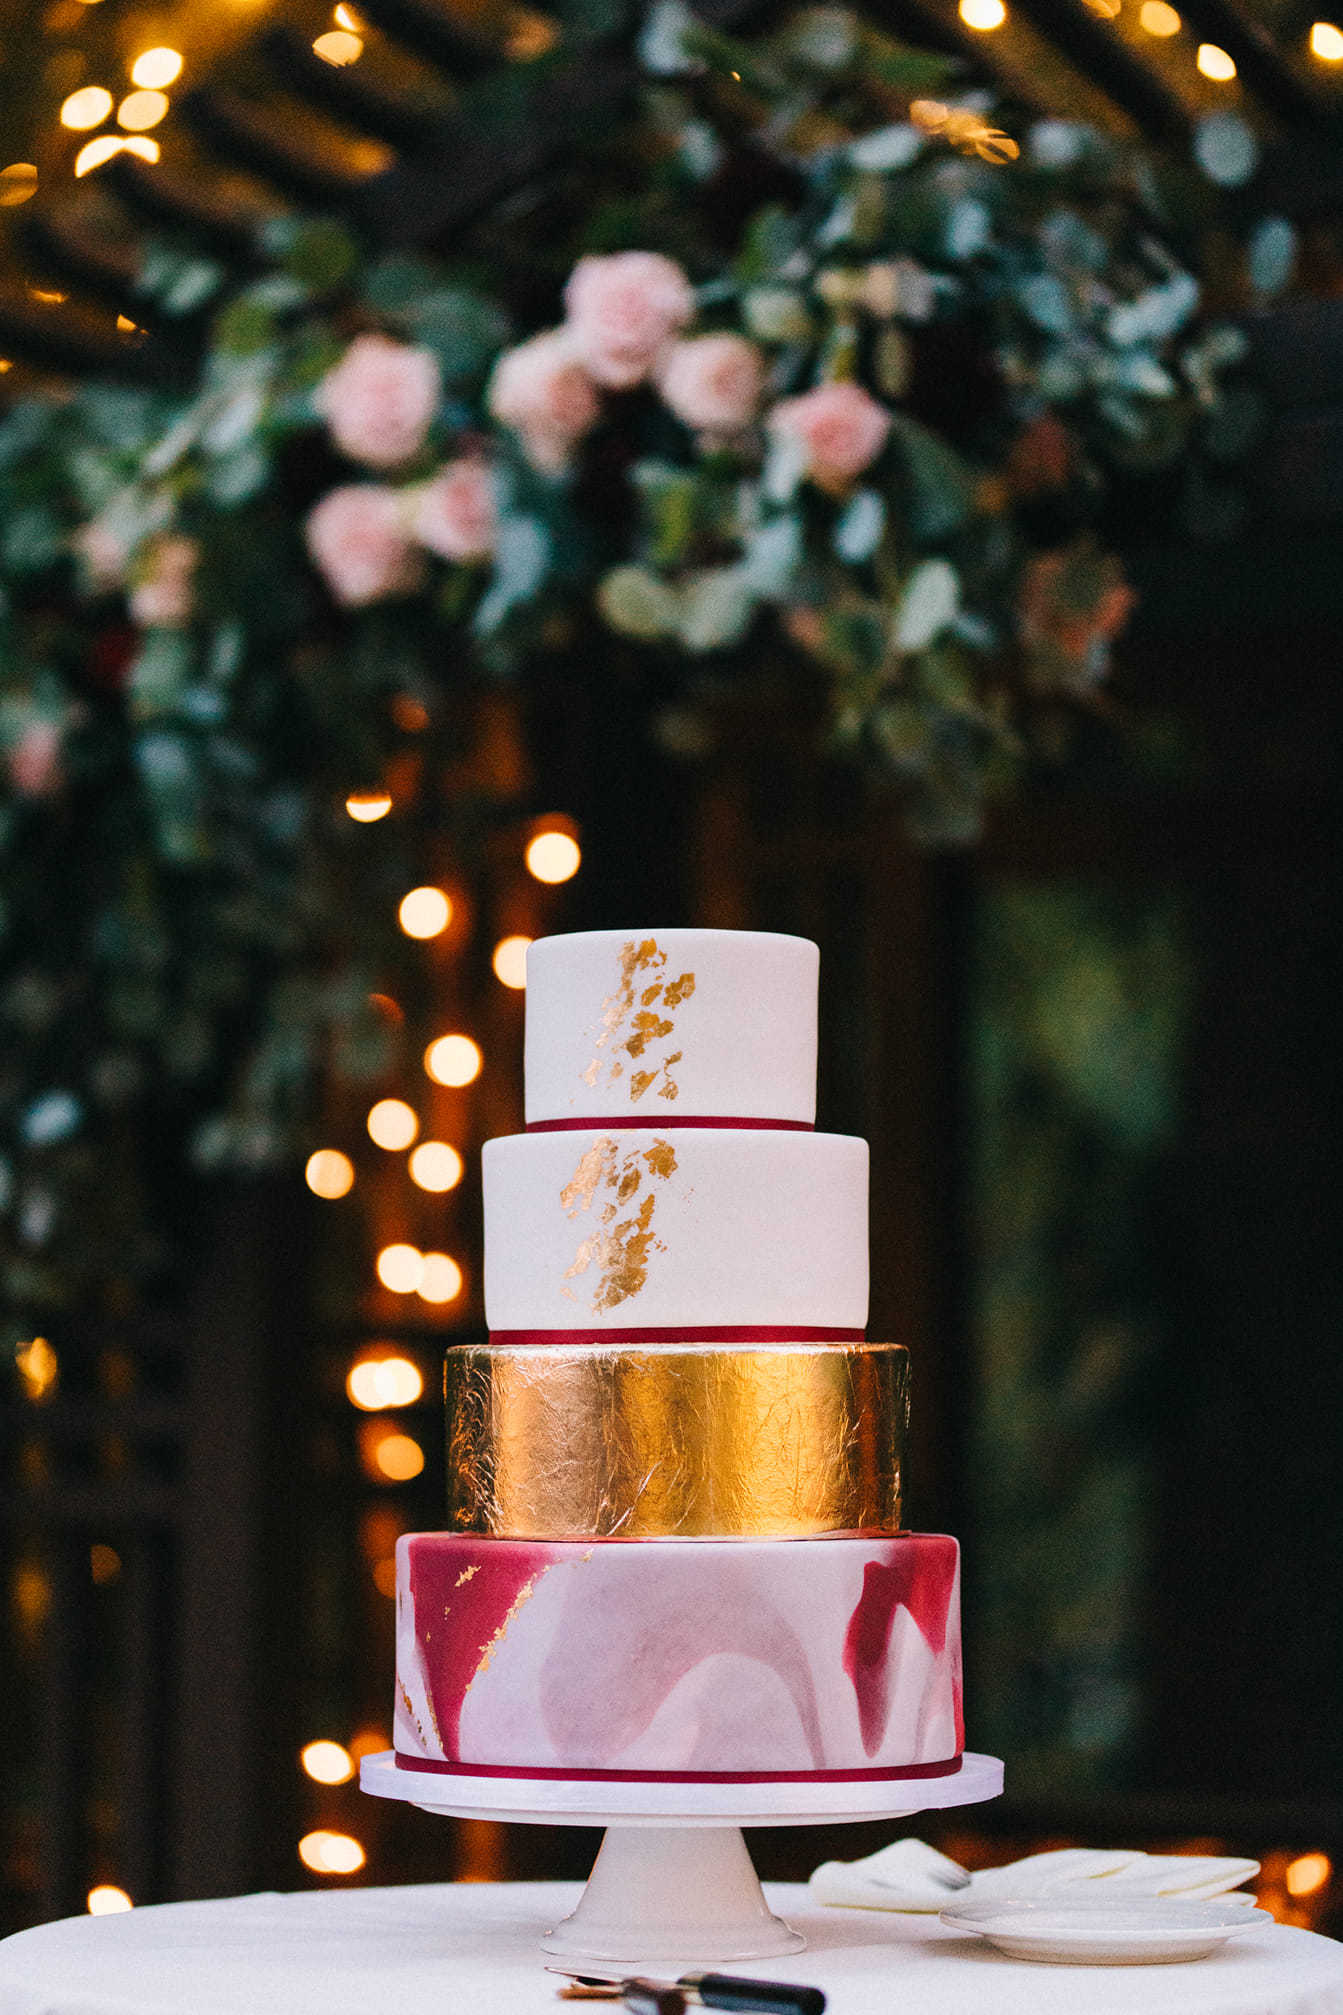 Pink with gold shine fondant wedding cake